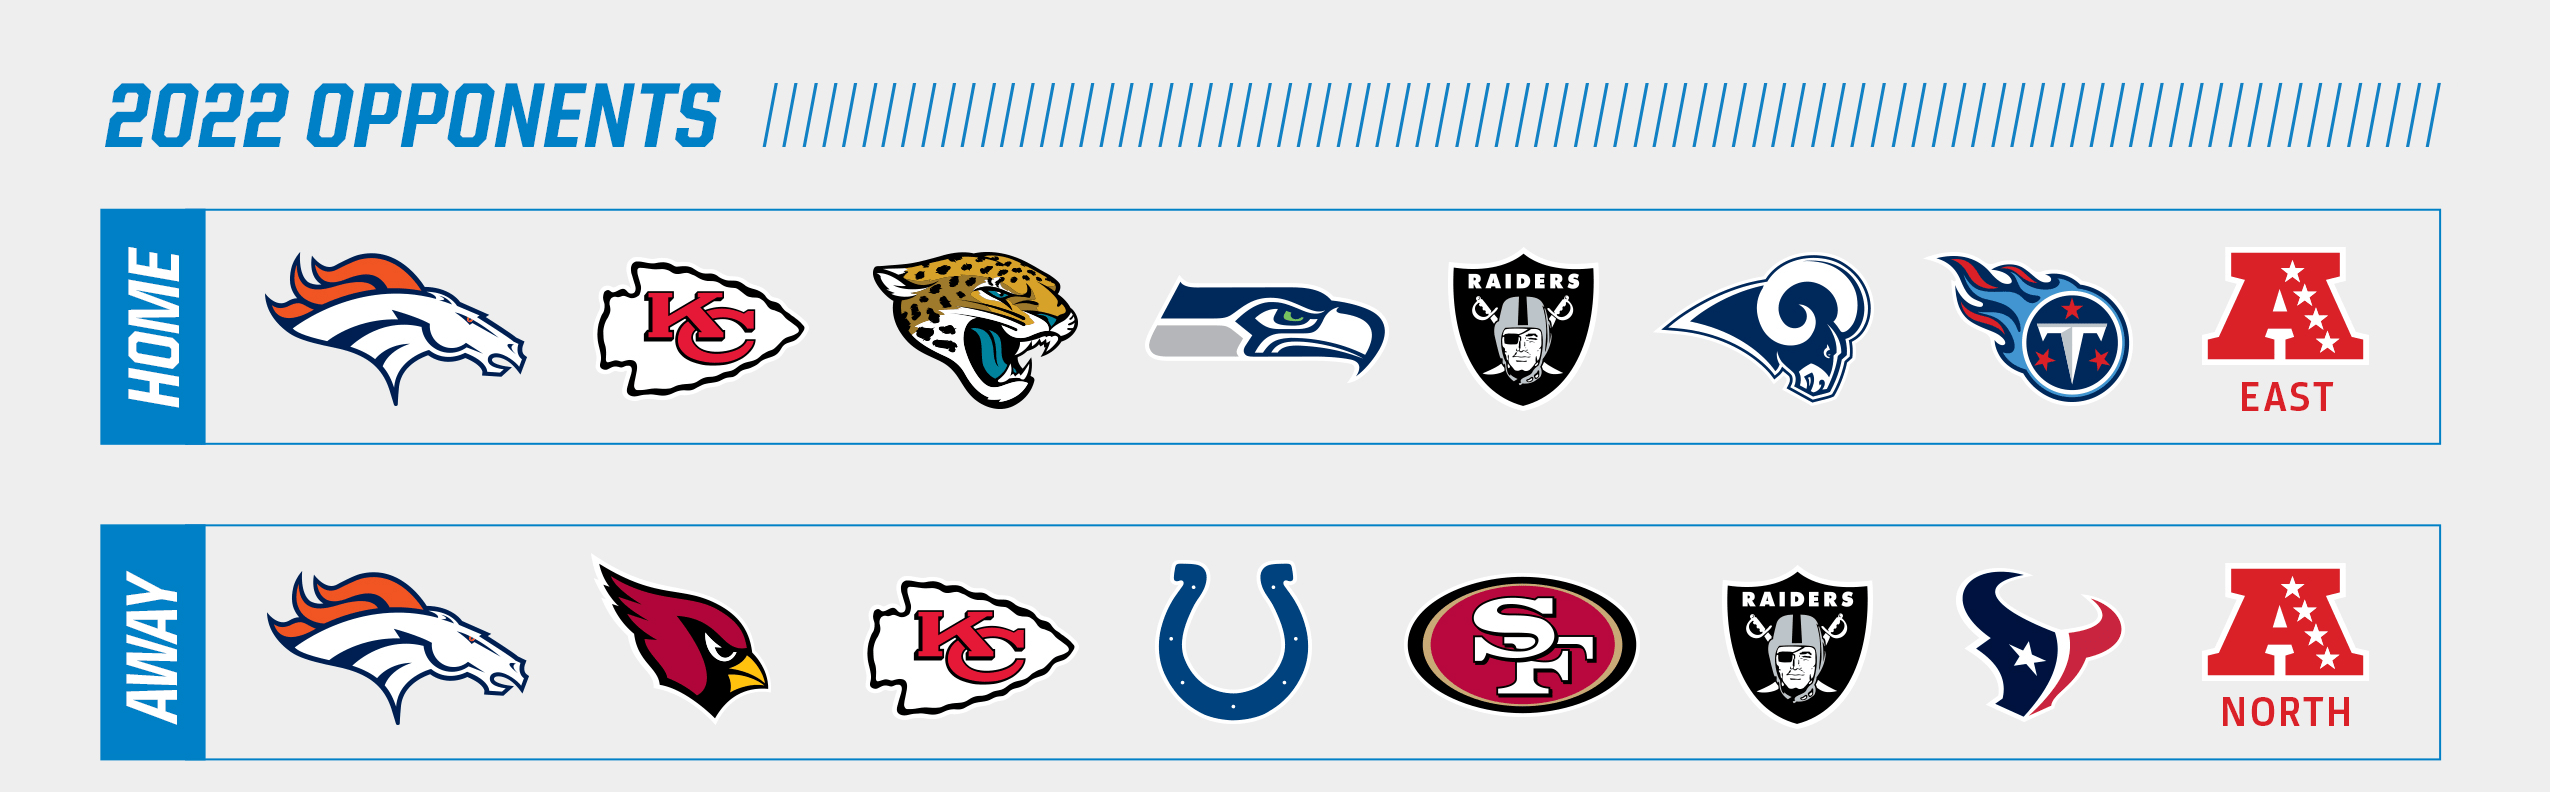 Colts Home Schedule 2020.Chargers Future Opponents Los Angeles Chargers Chargers Com